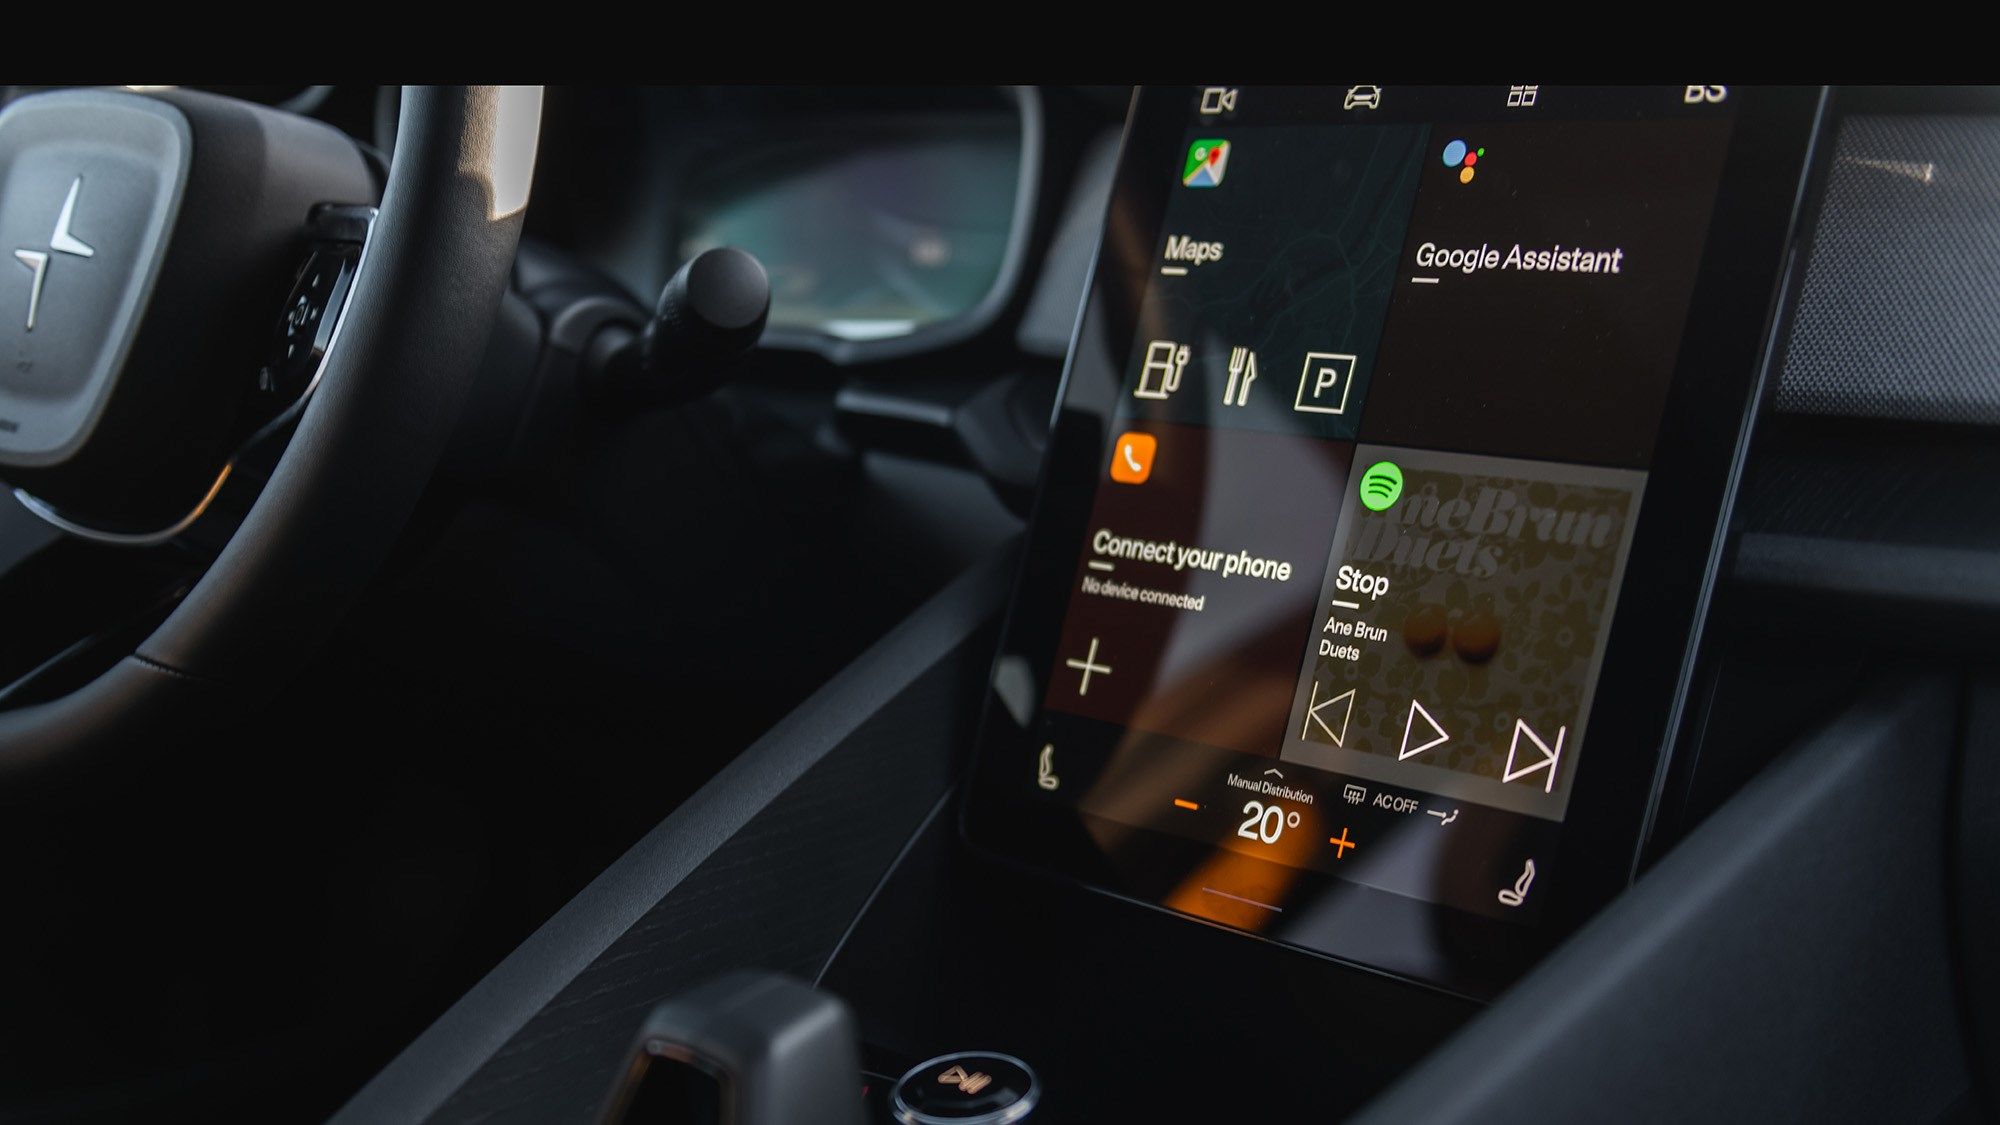 2020 Polestar 2 infotainment powered by Android